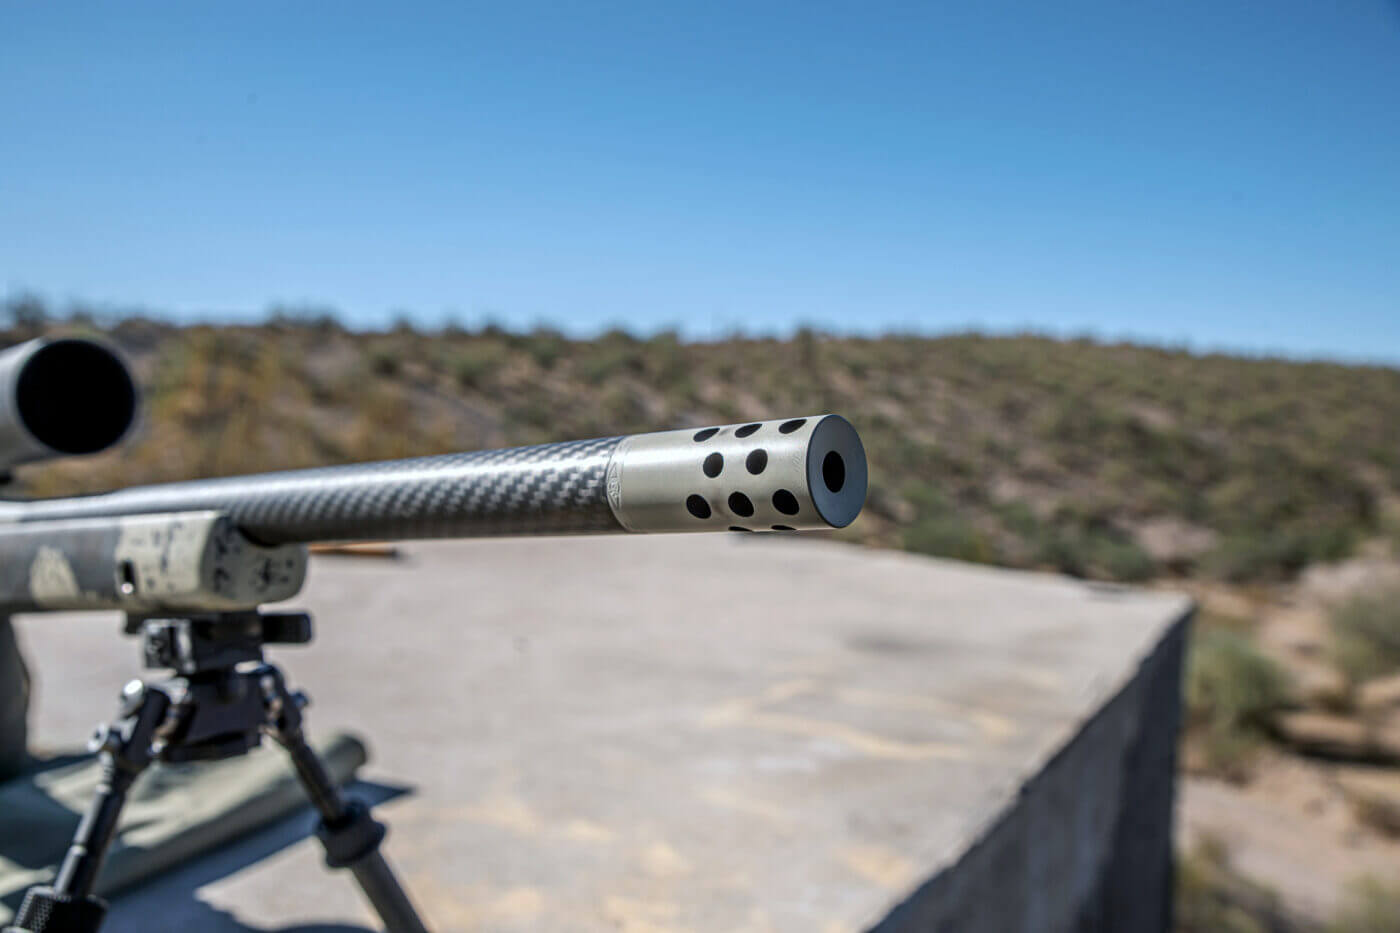 Radial muzzle brake on the Springfield Armory Model 2020 Waypoint rifle